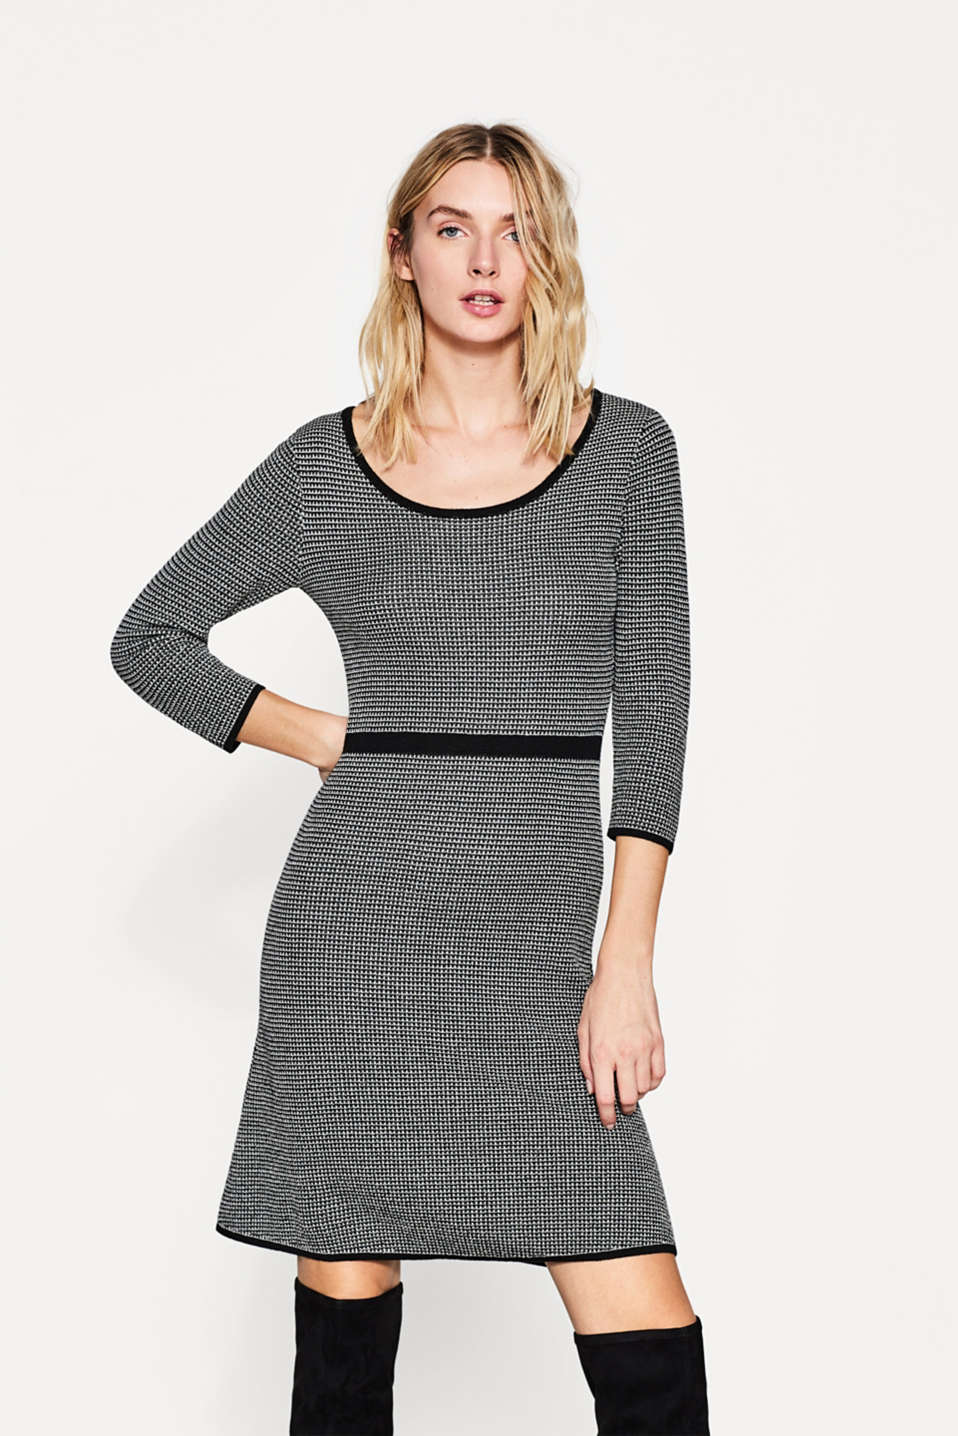 Esprit - Knit dress with a textured pattern